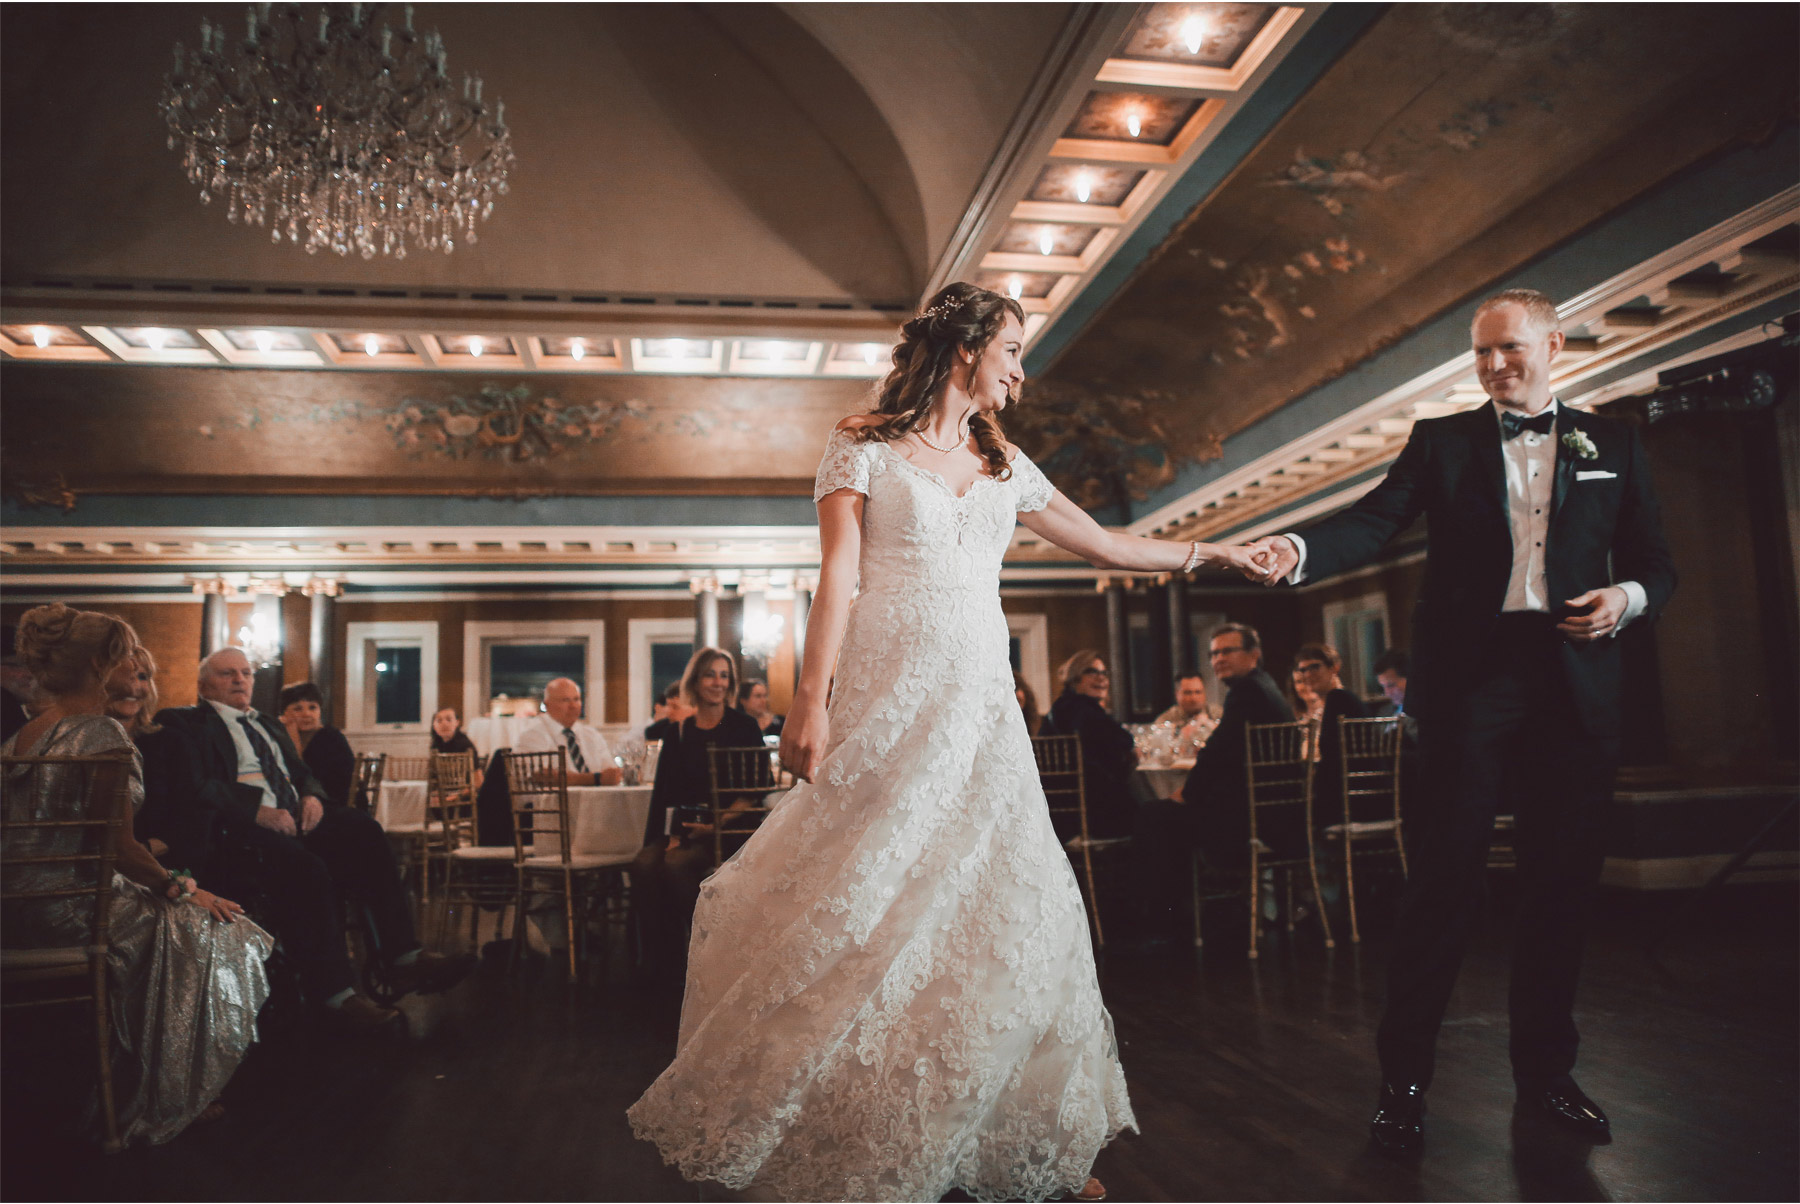 16-Minneapolis-Minnesota-Wedding-Photography-by-Vick-Photography-Semple-Mansion-First-Dance-Danielle-and-Chance.jpg